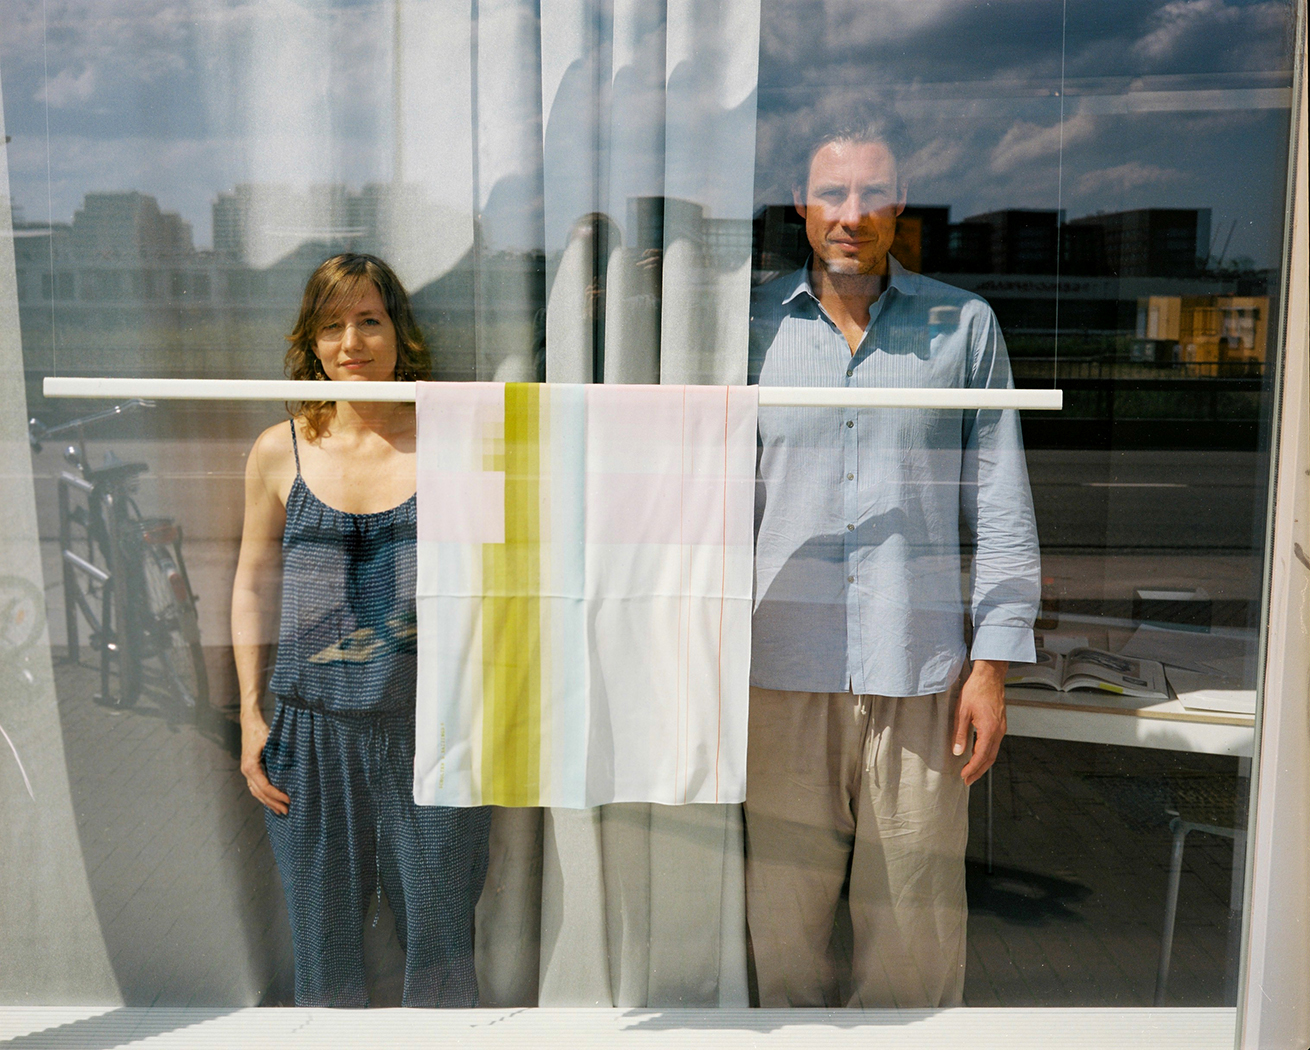 Carole Baijings and Stefan Scholten from Scholten&Baijings. Photo by Boudewijn Bollmann, 2011.